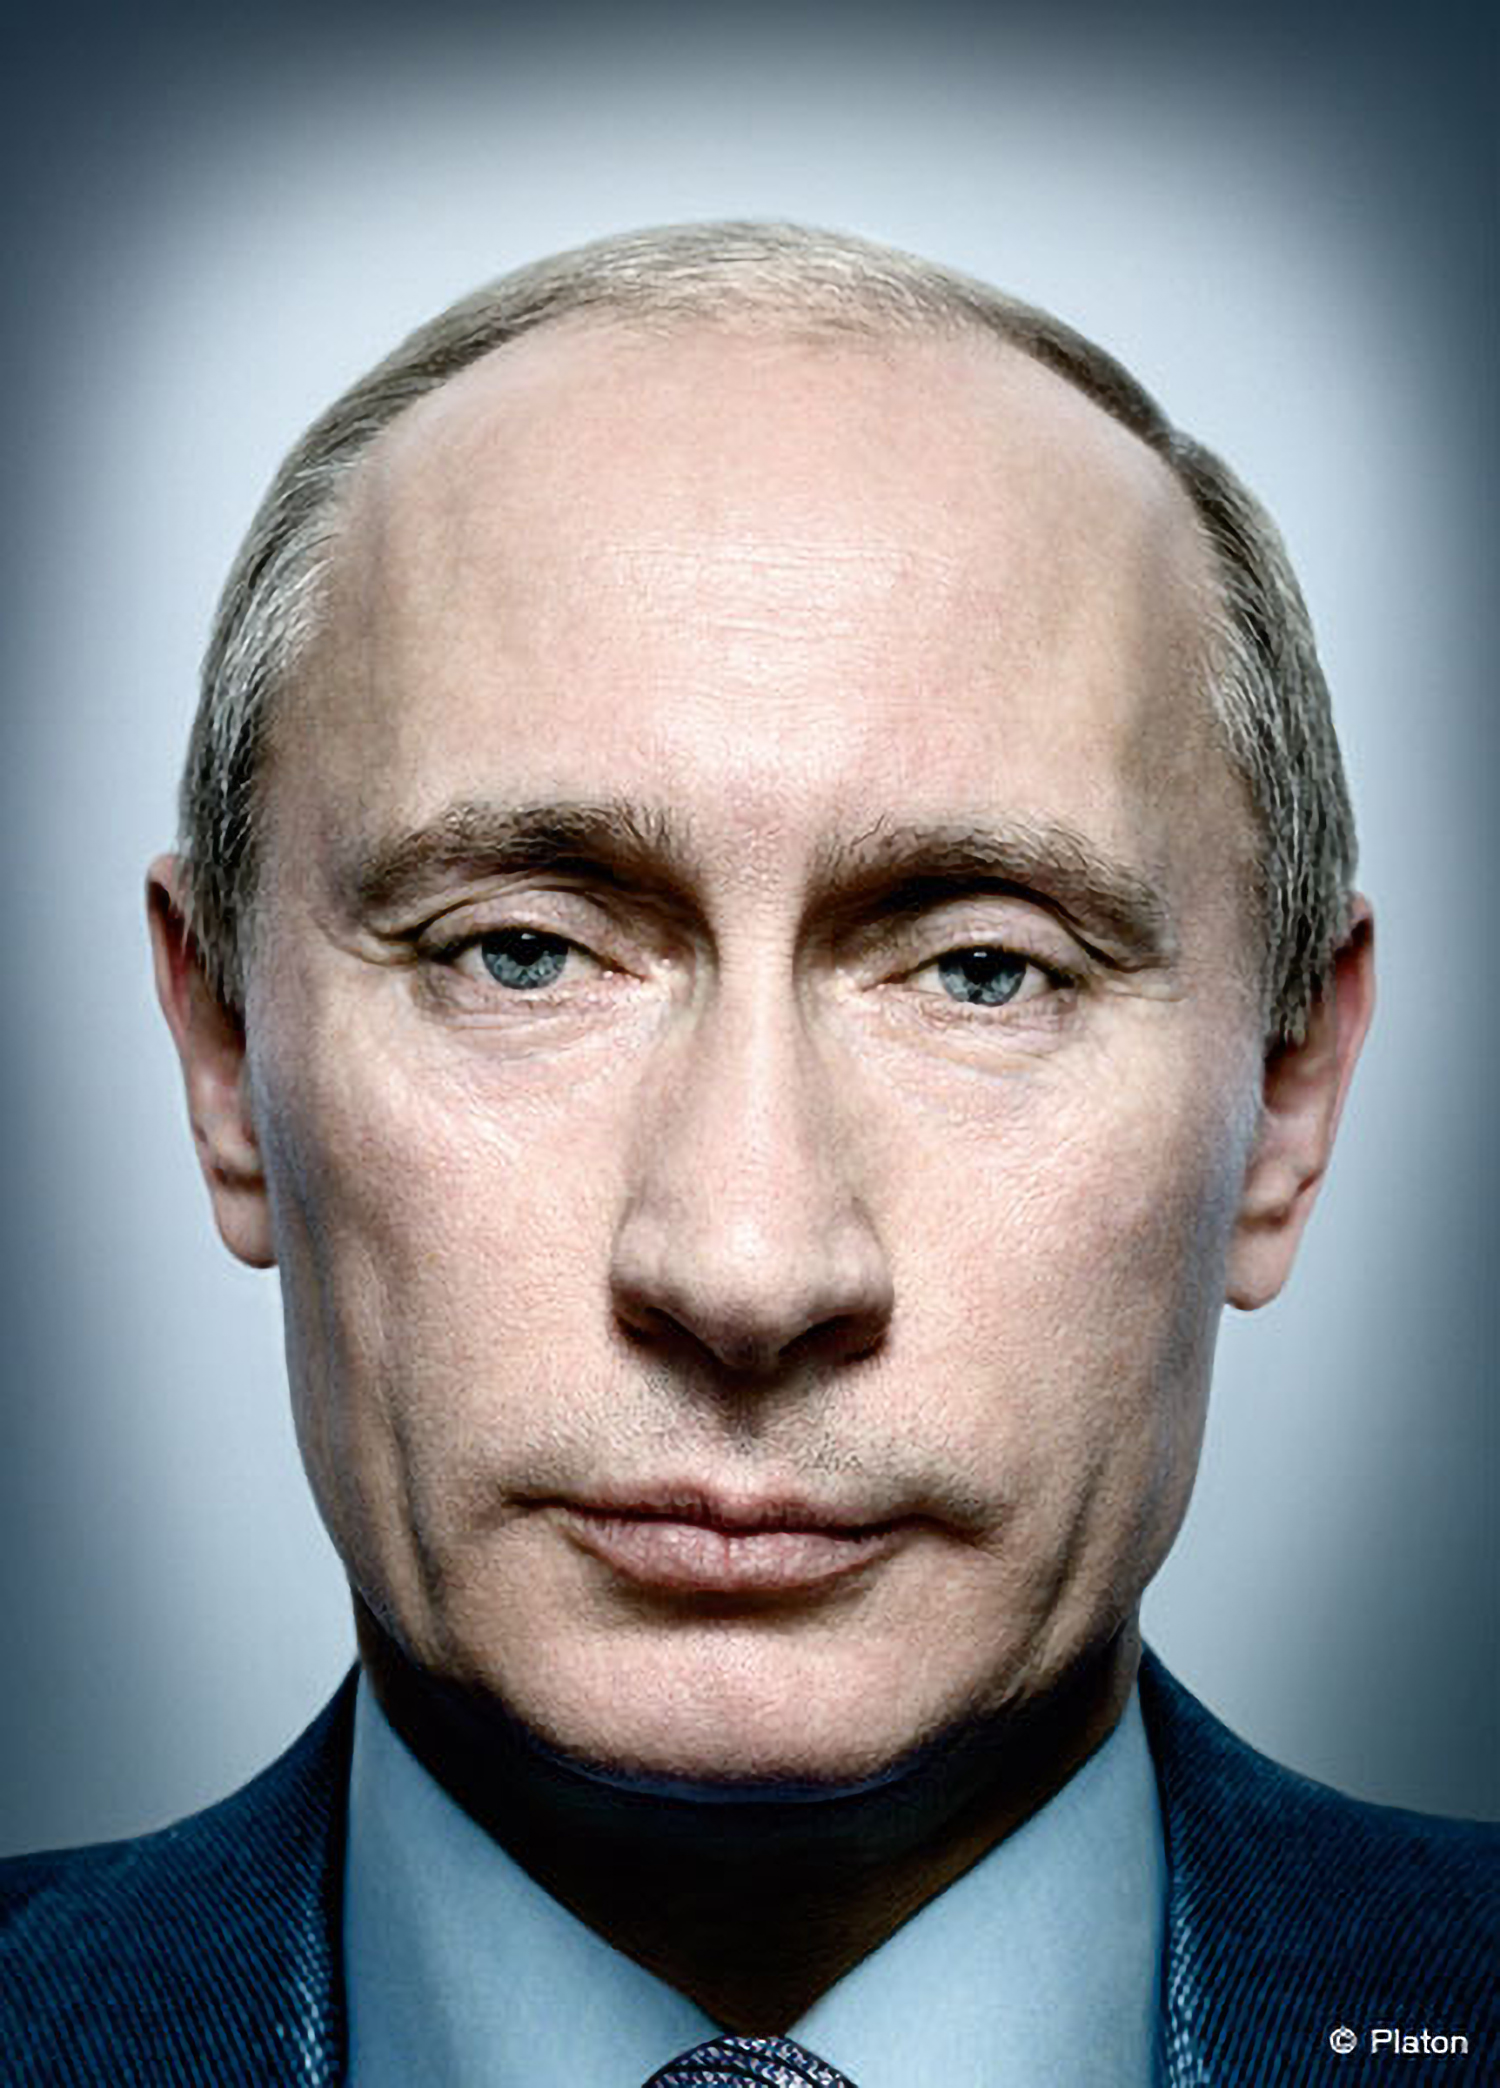 Photo of Putin by Platon